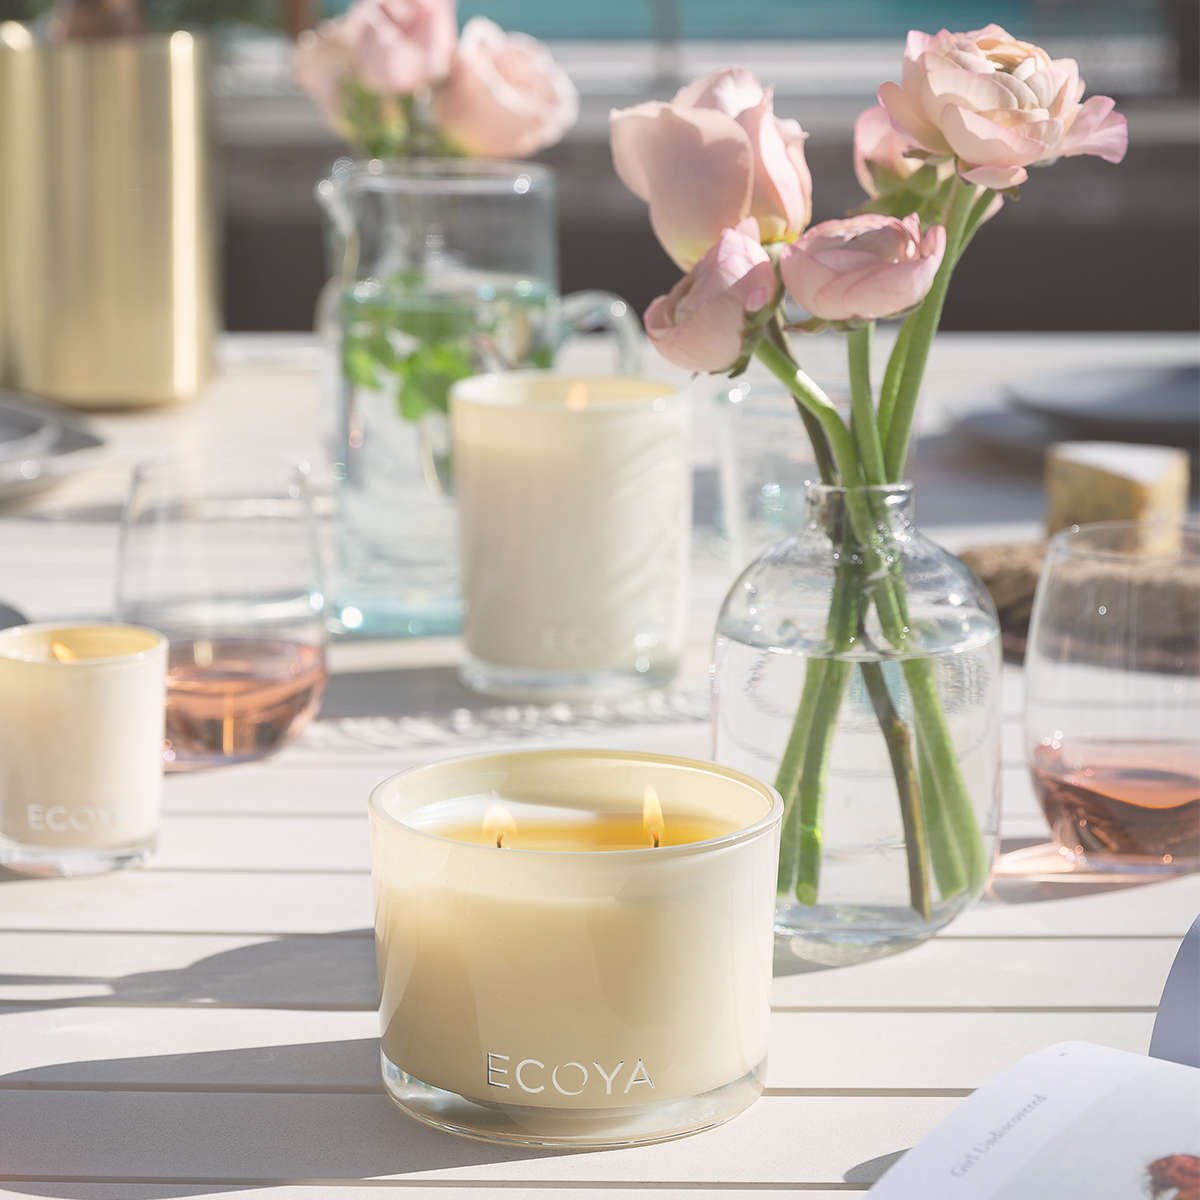 OUtdoor ECOYA candle